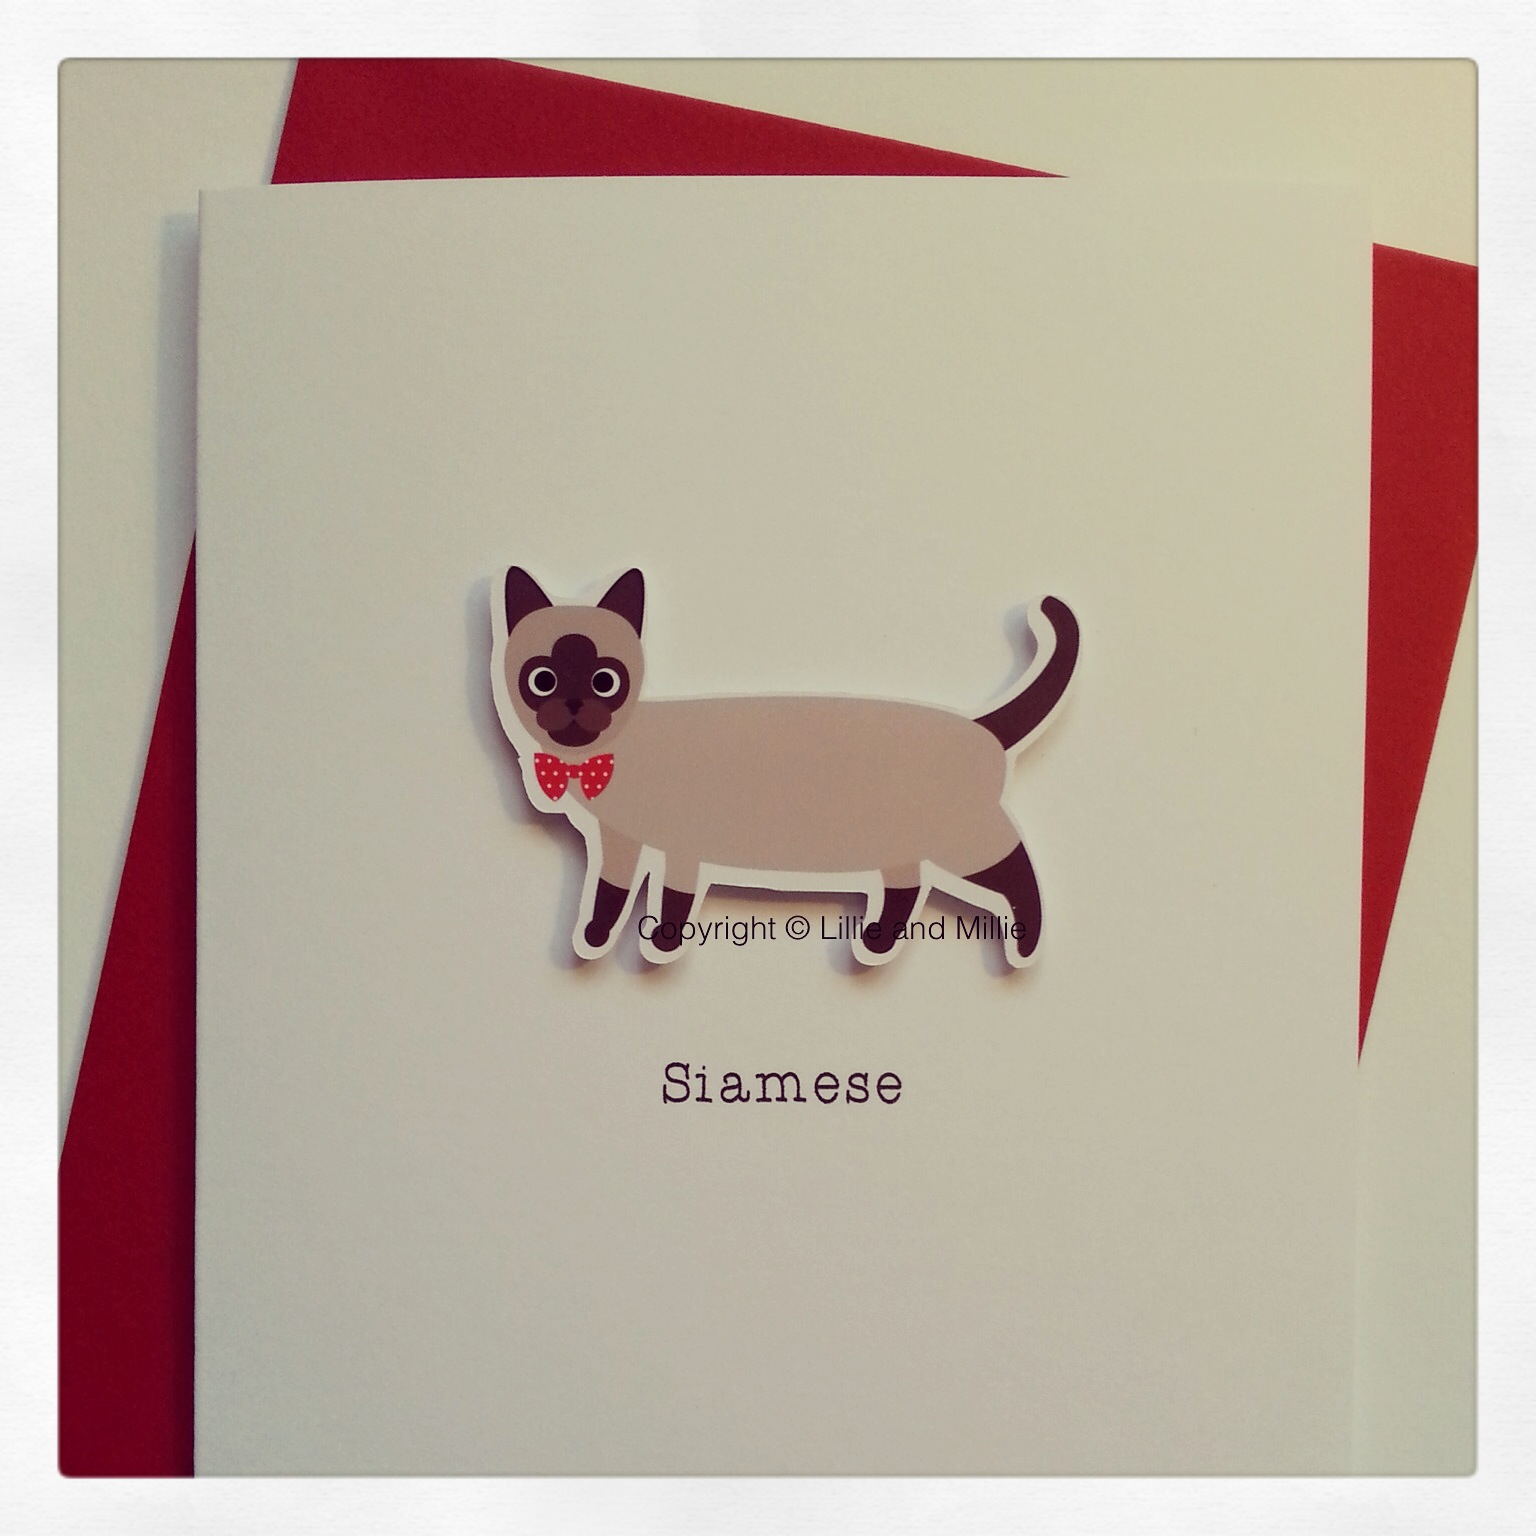 Cute and Cuddly Siamese Cat Greetings Card